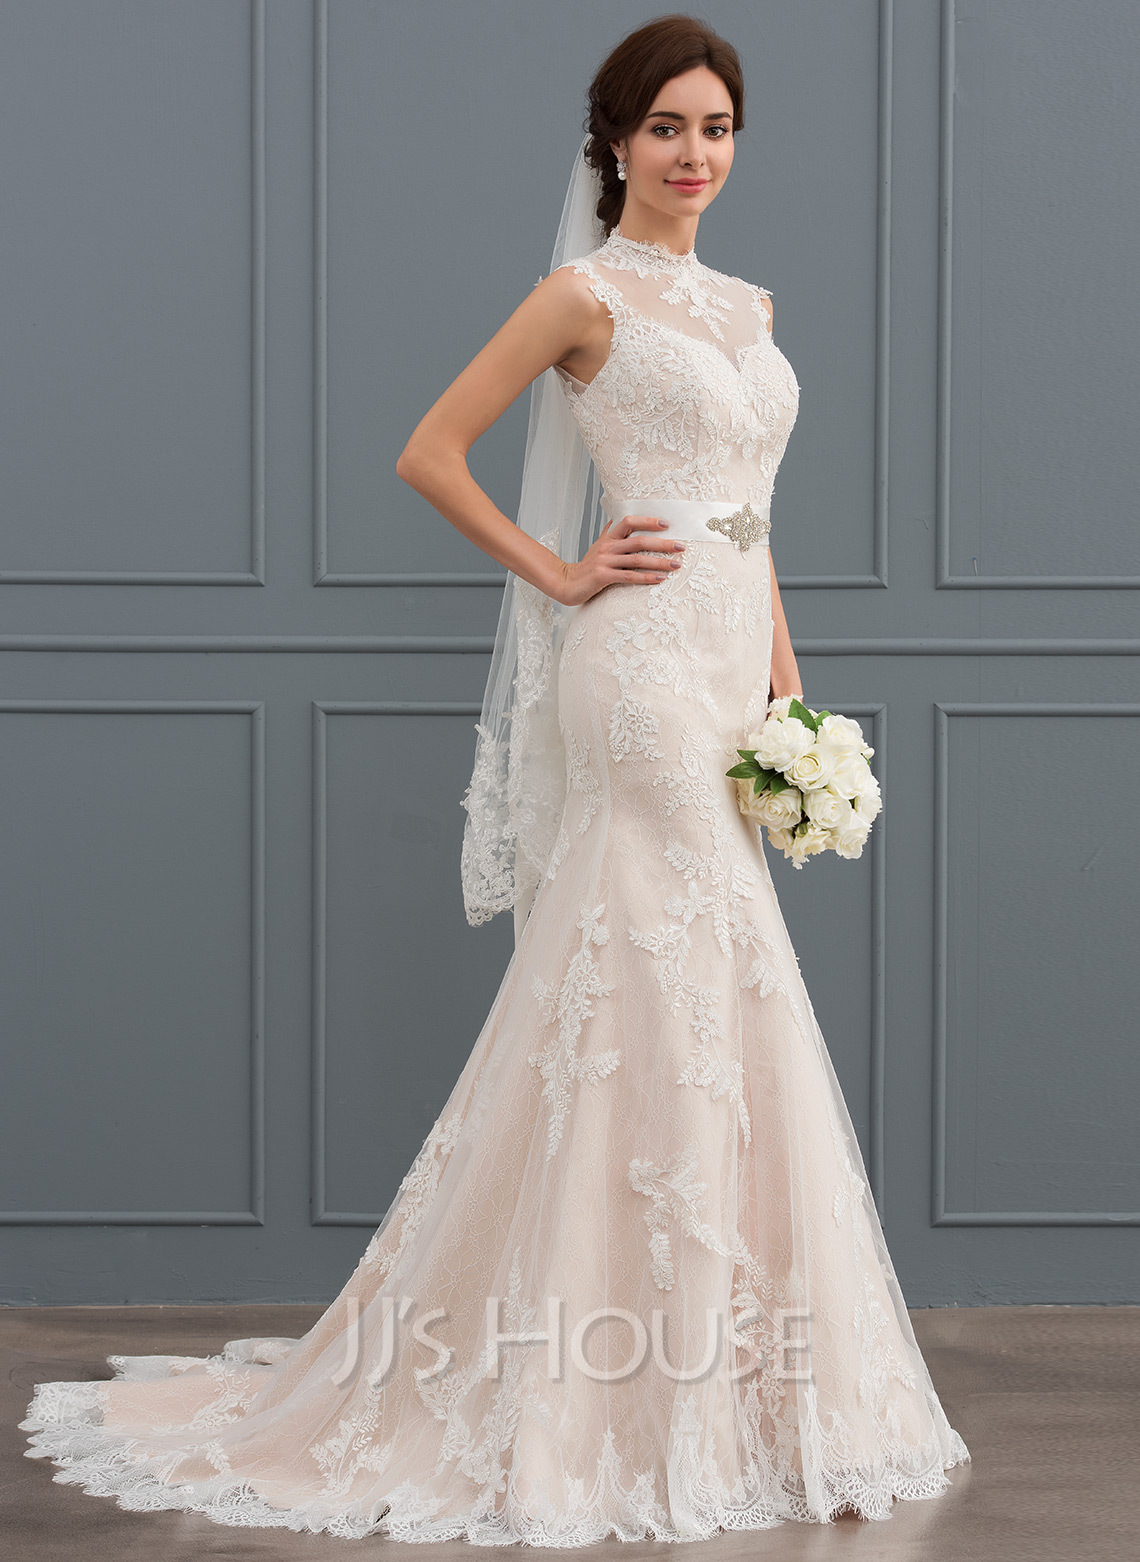 Trumpet/Mermaid High Neck Sweep Train Tulle Lace Wedding Dress With Beading